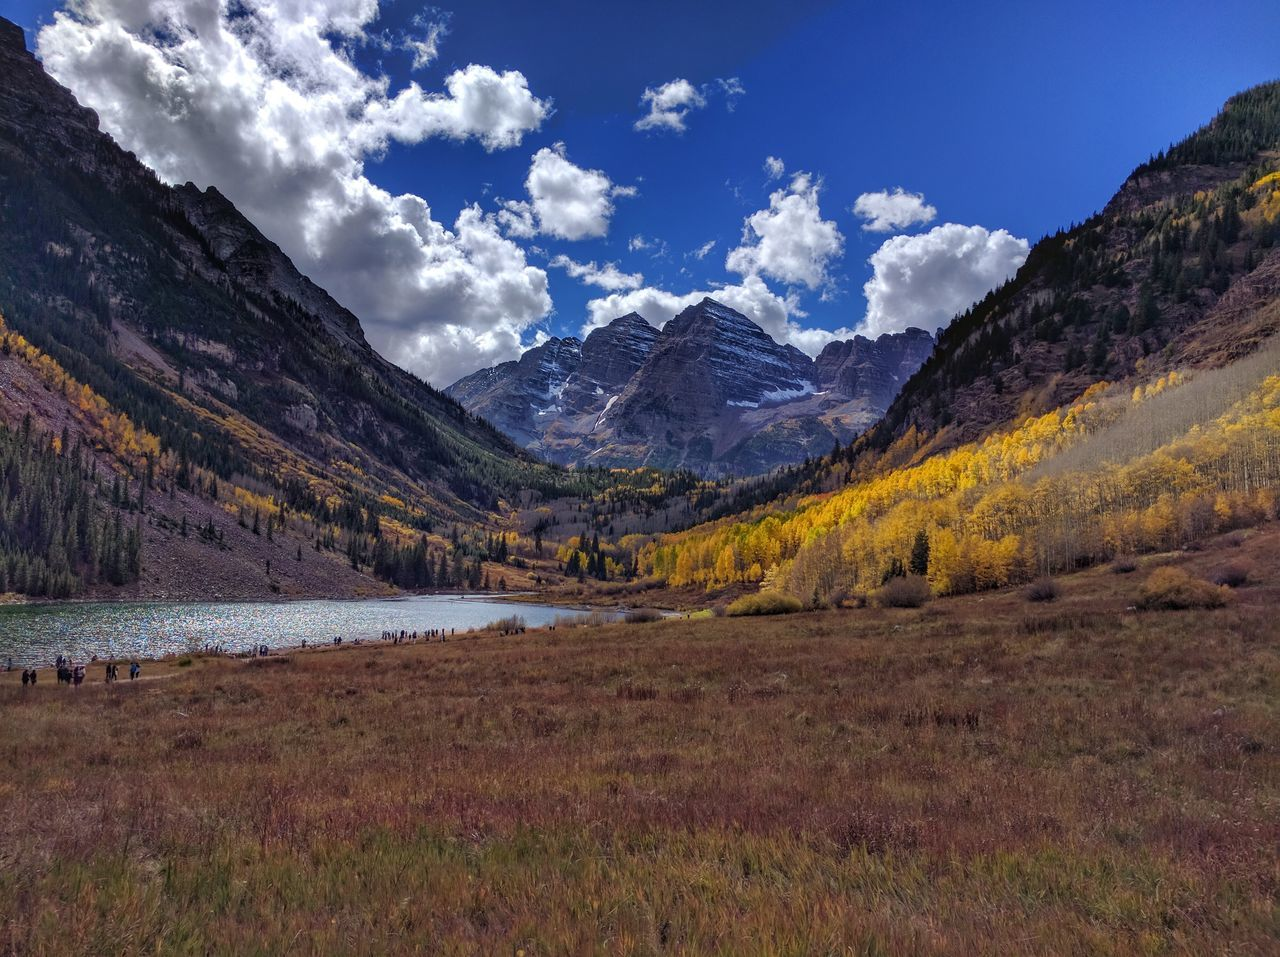 Mountain Tranquil Scene Scenics Tranquility Non-urban Scene Beauty In Nature Landscape Sky Nature Mountain Range Remote Physical Geography Countryside Blue Travel Destinations Geology Cloud - Sky Cloud Outdoors Majestic Maroonbells Fall Colors Fall Beauty Fall Leaves Fall